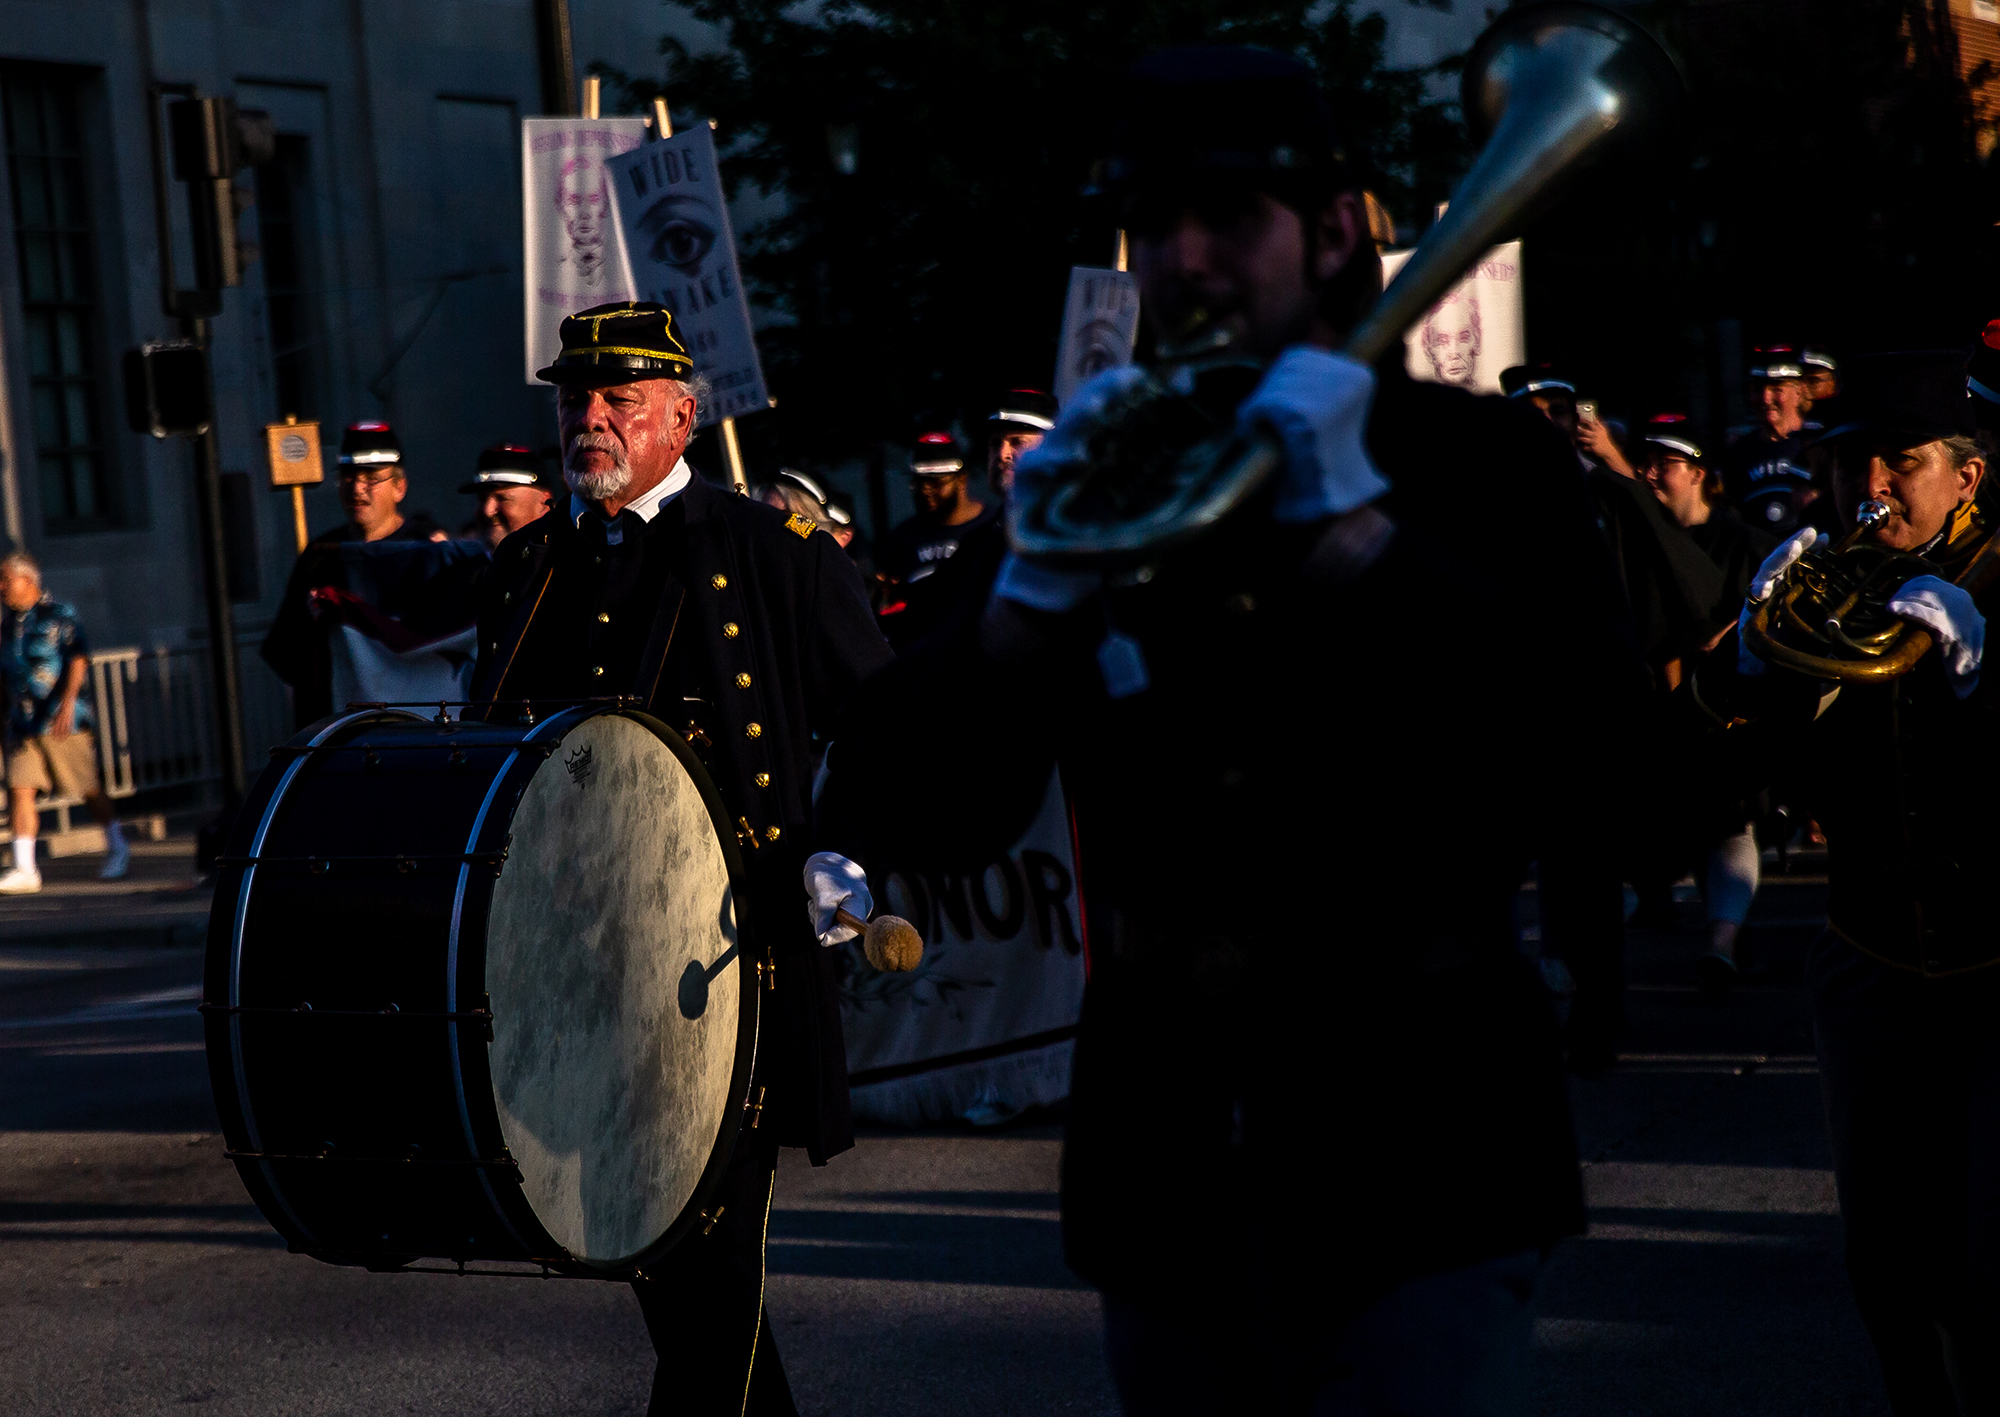 Members of the 10th Illinois Volunteer Cavalry RegimentBand march up South Sixth Street during the Lincoln Wide Awake Parade, a re-enactment of an 1860 parade to support Abraham LincolnÕs presidential candidacy, as they march with the Wide Awakes to the Old State Capitol from the Lincoln Home, Saturday, Aug. 4, 2018, in Springfield, Ill. The Wide Awakes, who wore black caps and black hats when they marched, got their name from a small group of young self-named supporters who impressed Lincoln at a political rally, according to the Journal of American History. [Justin L. Fowler/The State Journal-Register]